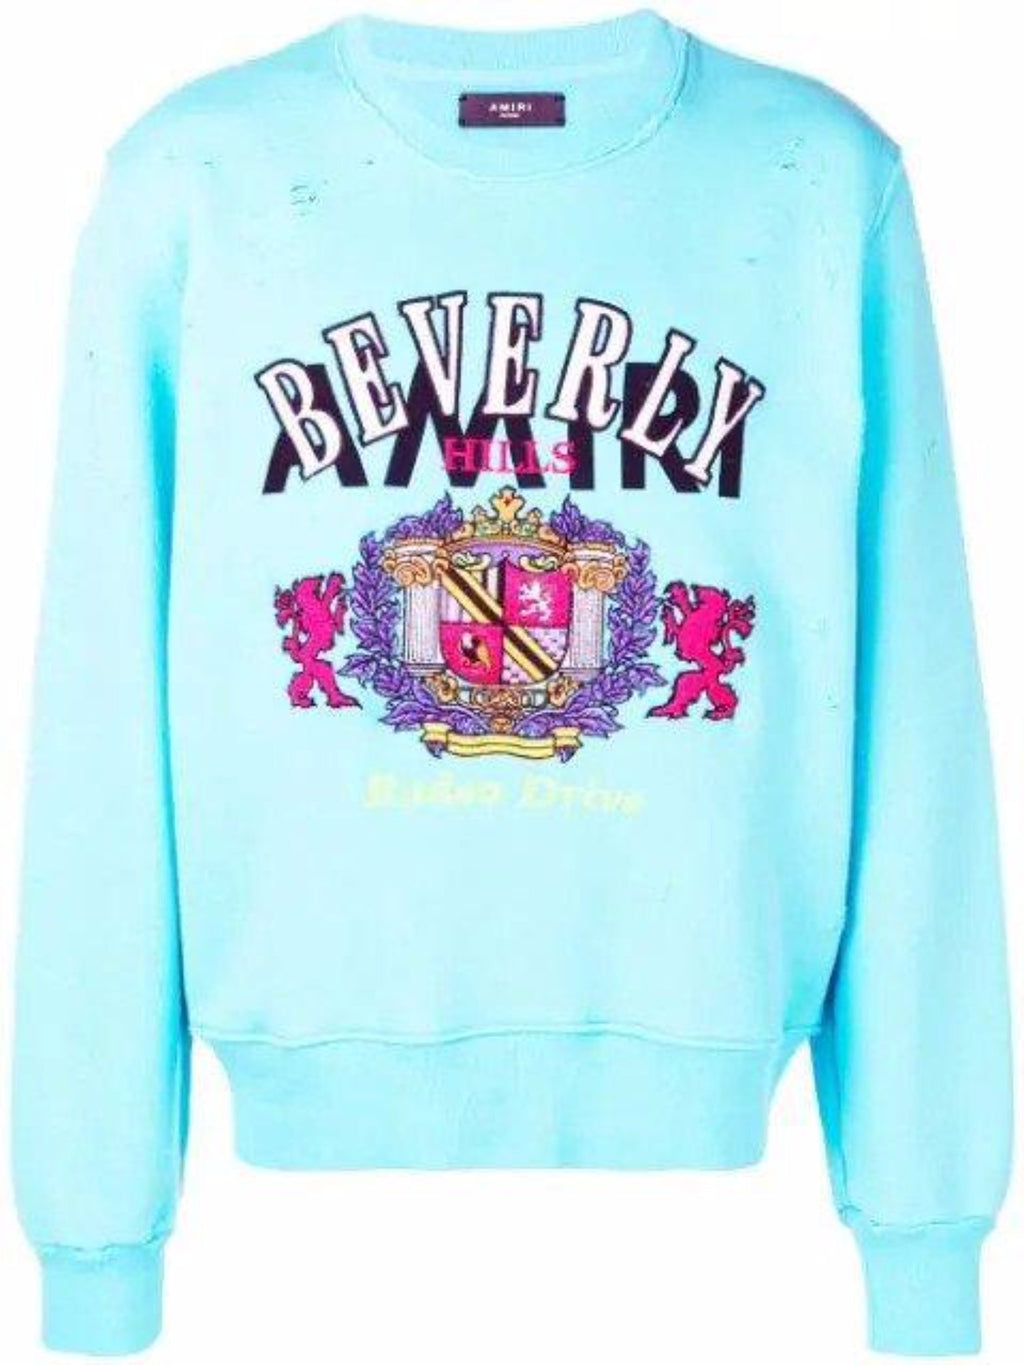 Beverly Hills Sweatshirt